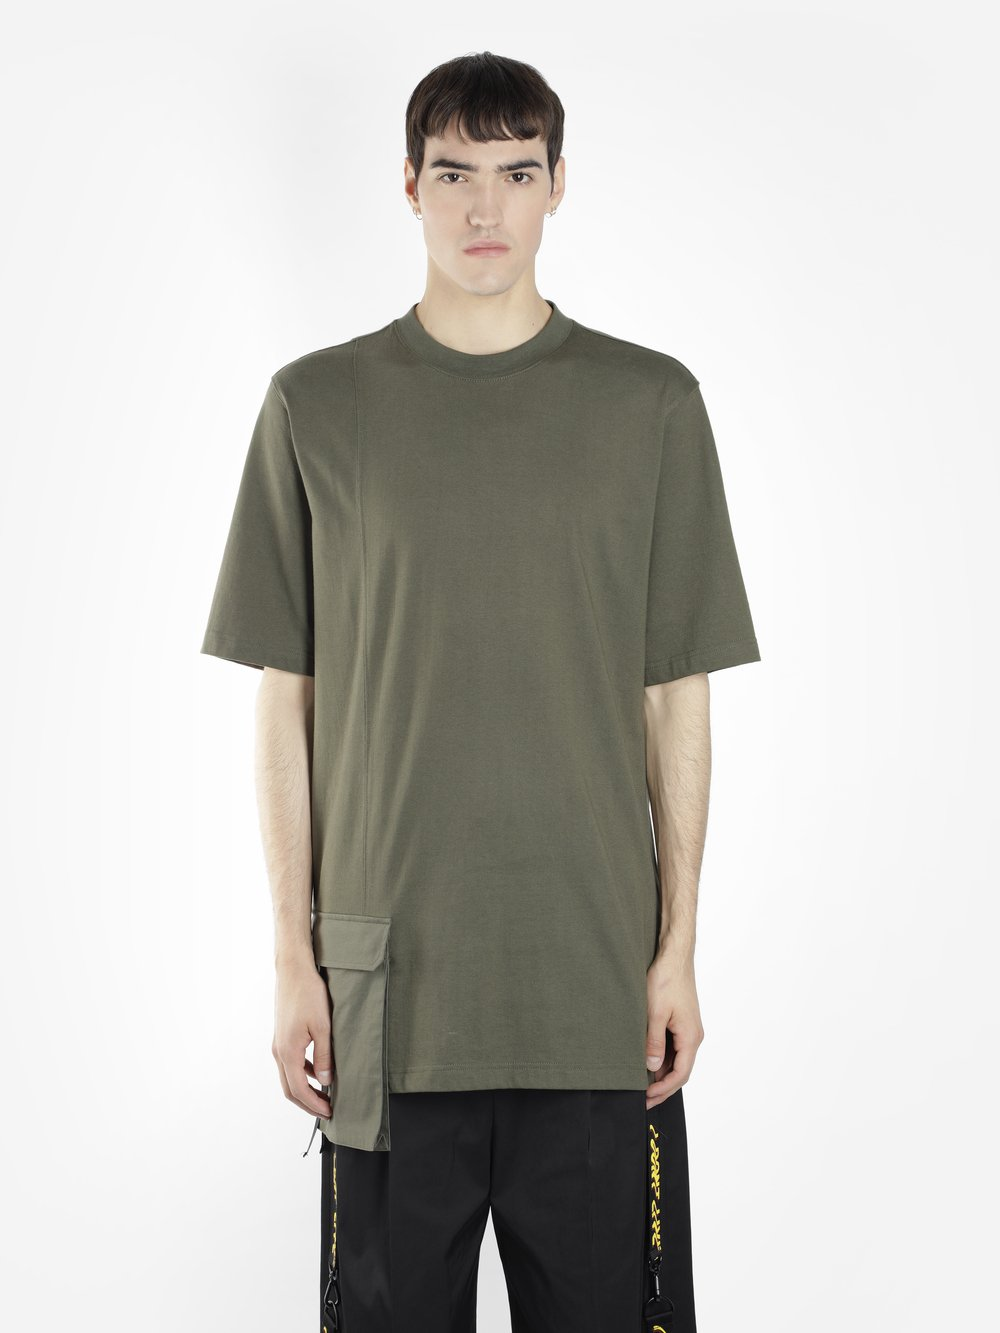 D BY D MEN'S GREEN LONG T-SHIRT WITH POCKET